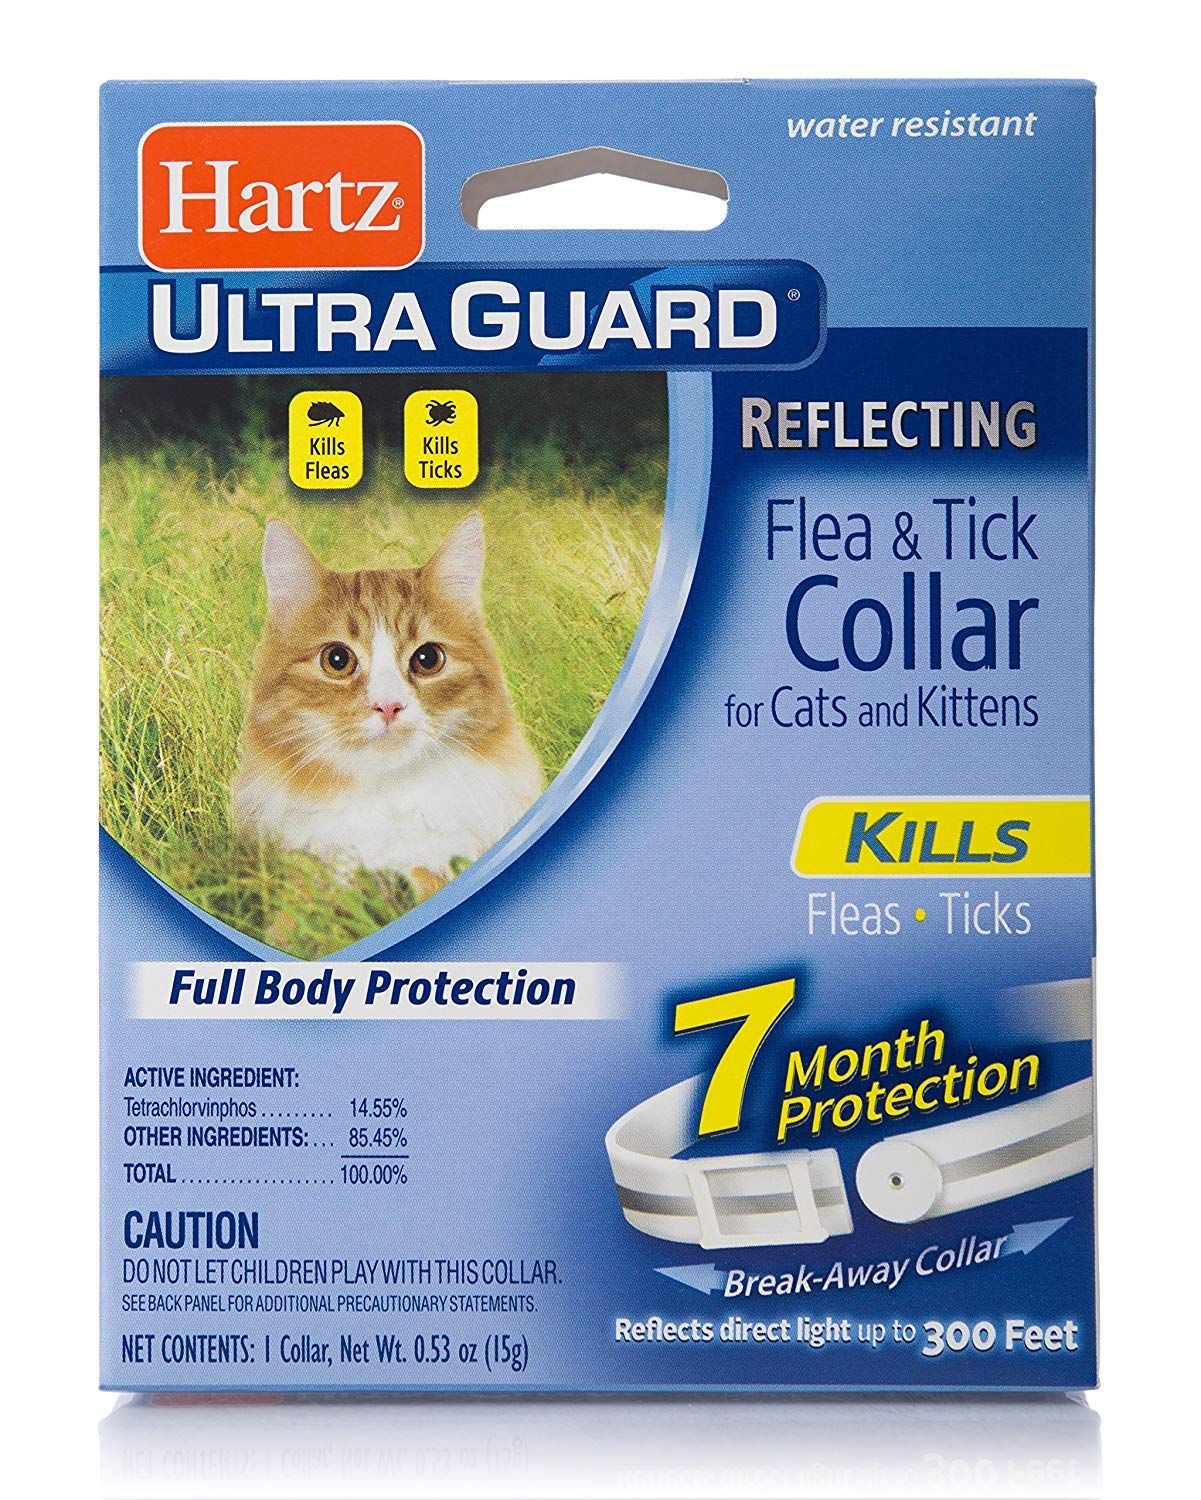 Hartz Ultraguard Purple Flea And Tick Collar For Cats And Kitten Wonderful Of You To Drop By To View Our Photo This Flea And Tick Cats And Kittens Fleas